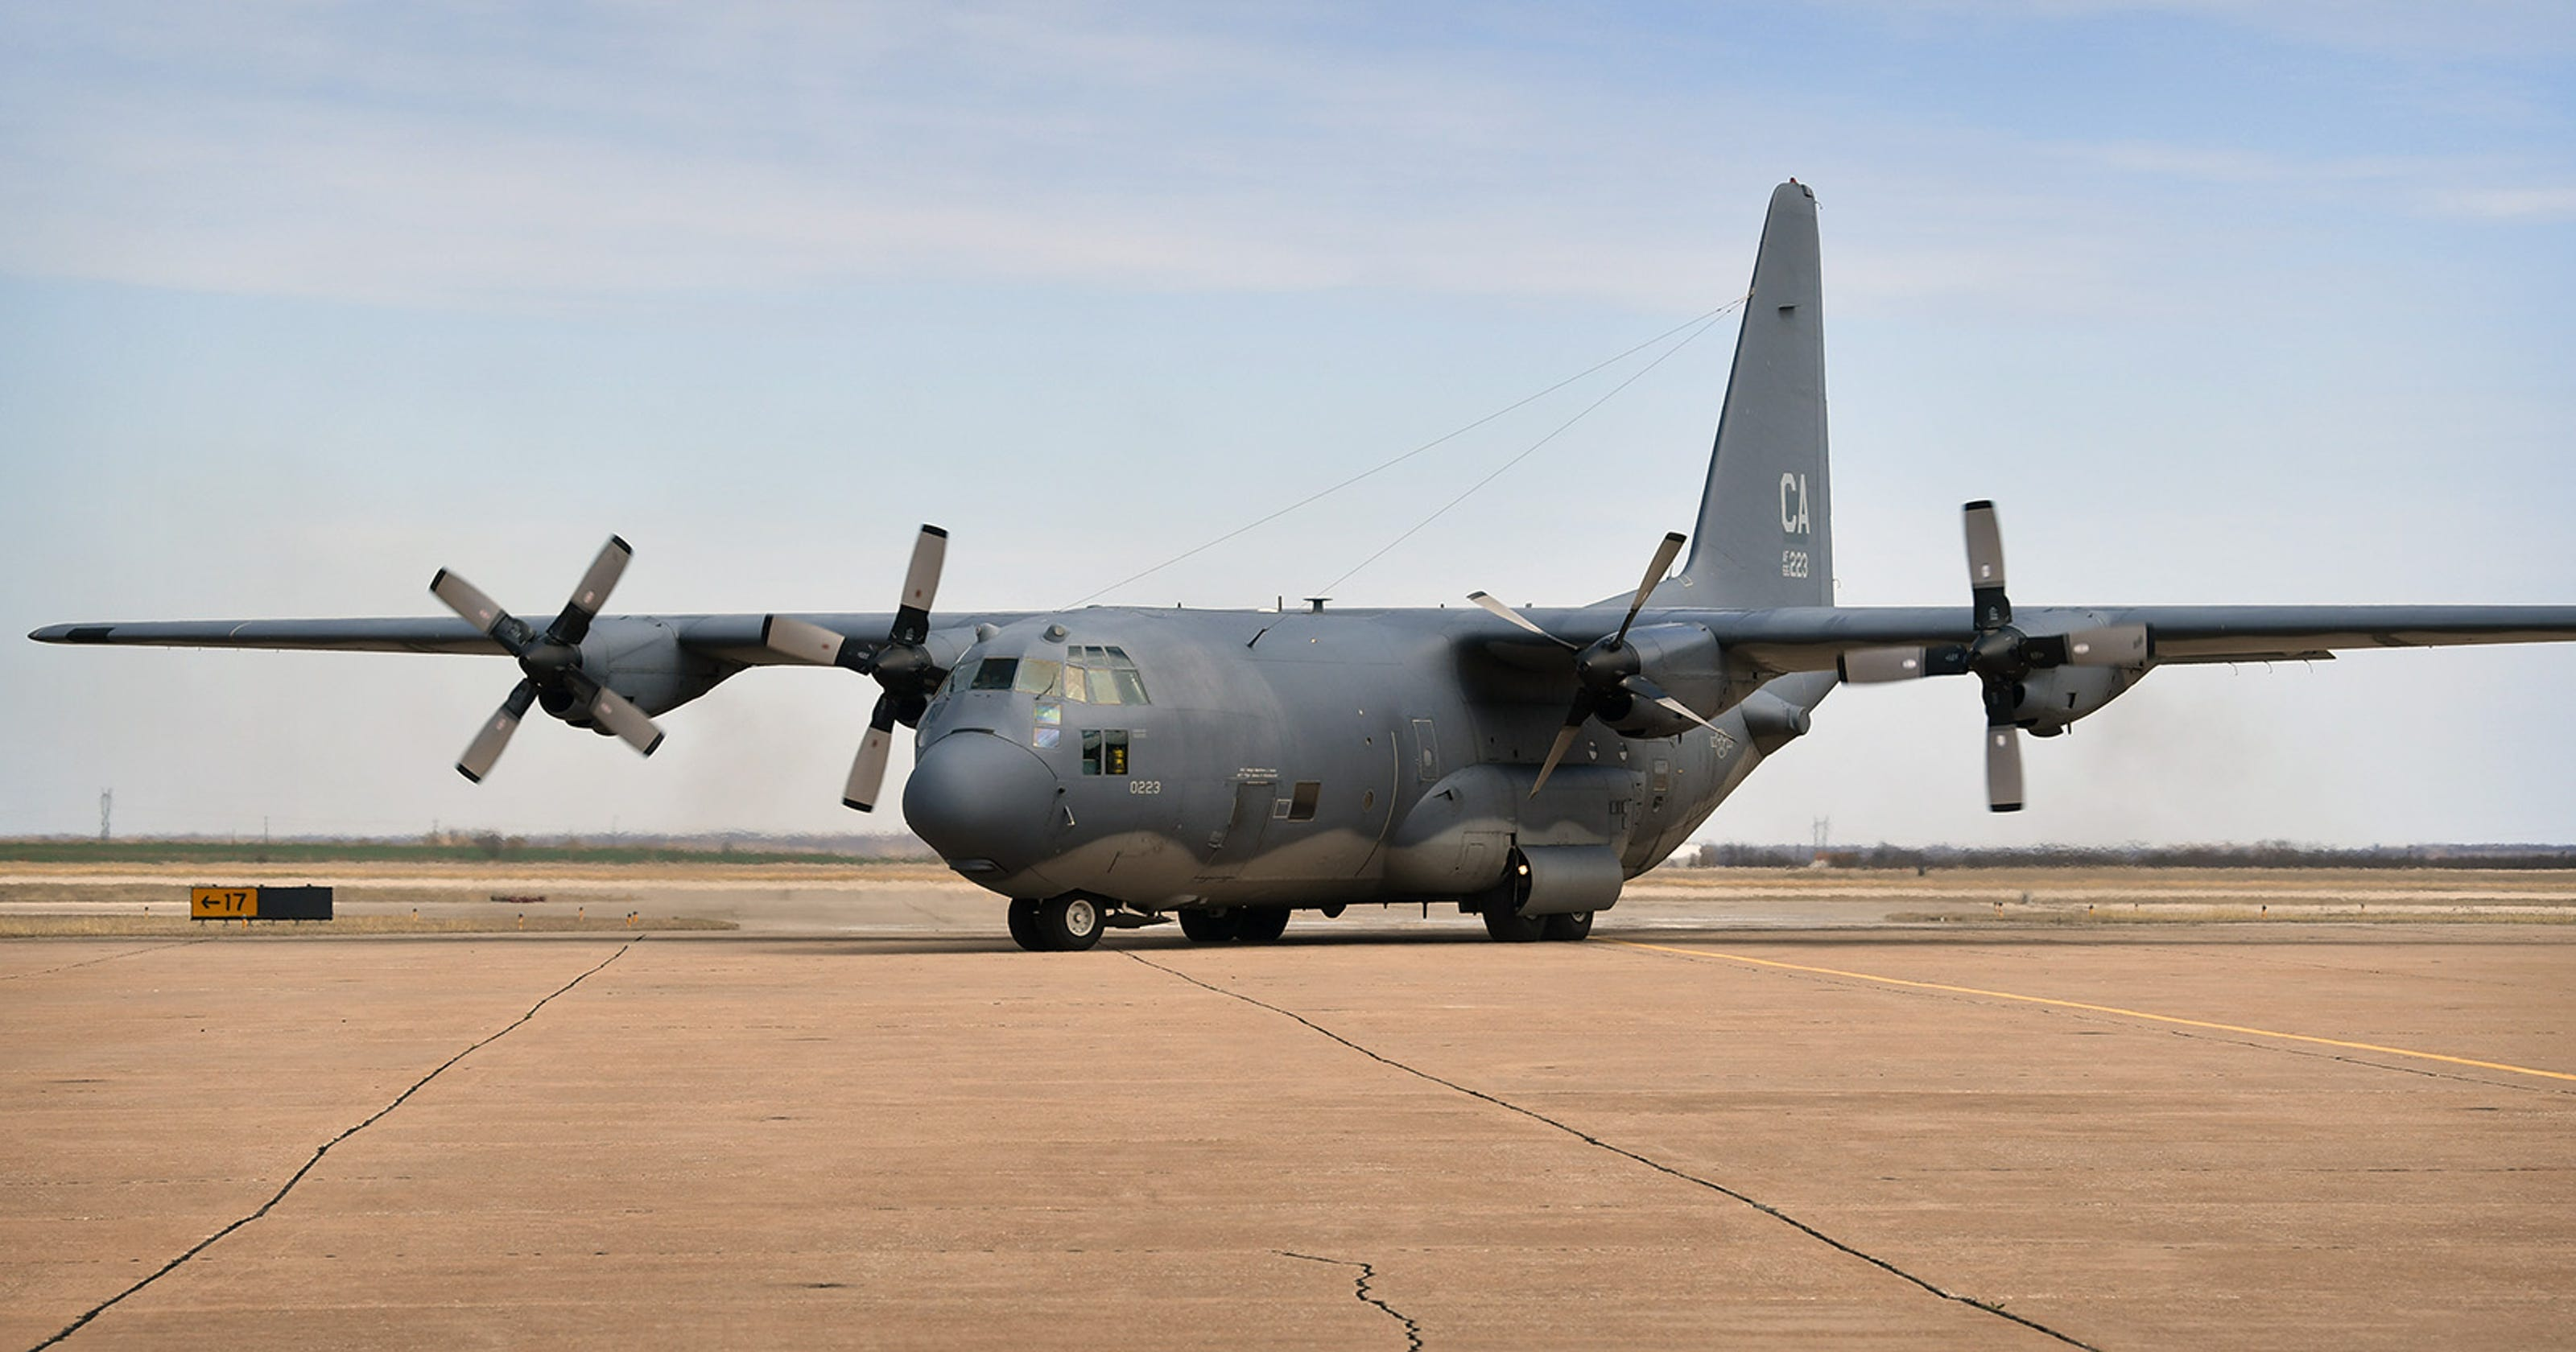 Iconic C-130 Made Final Flight From California To Sheppard AFB